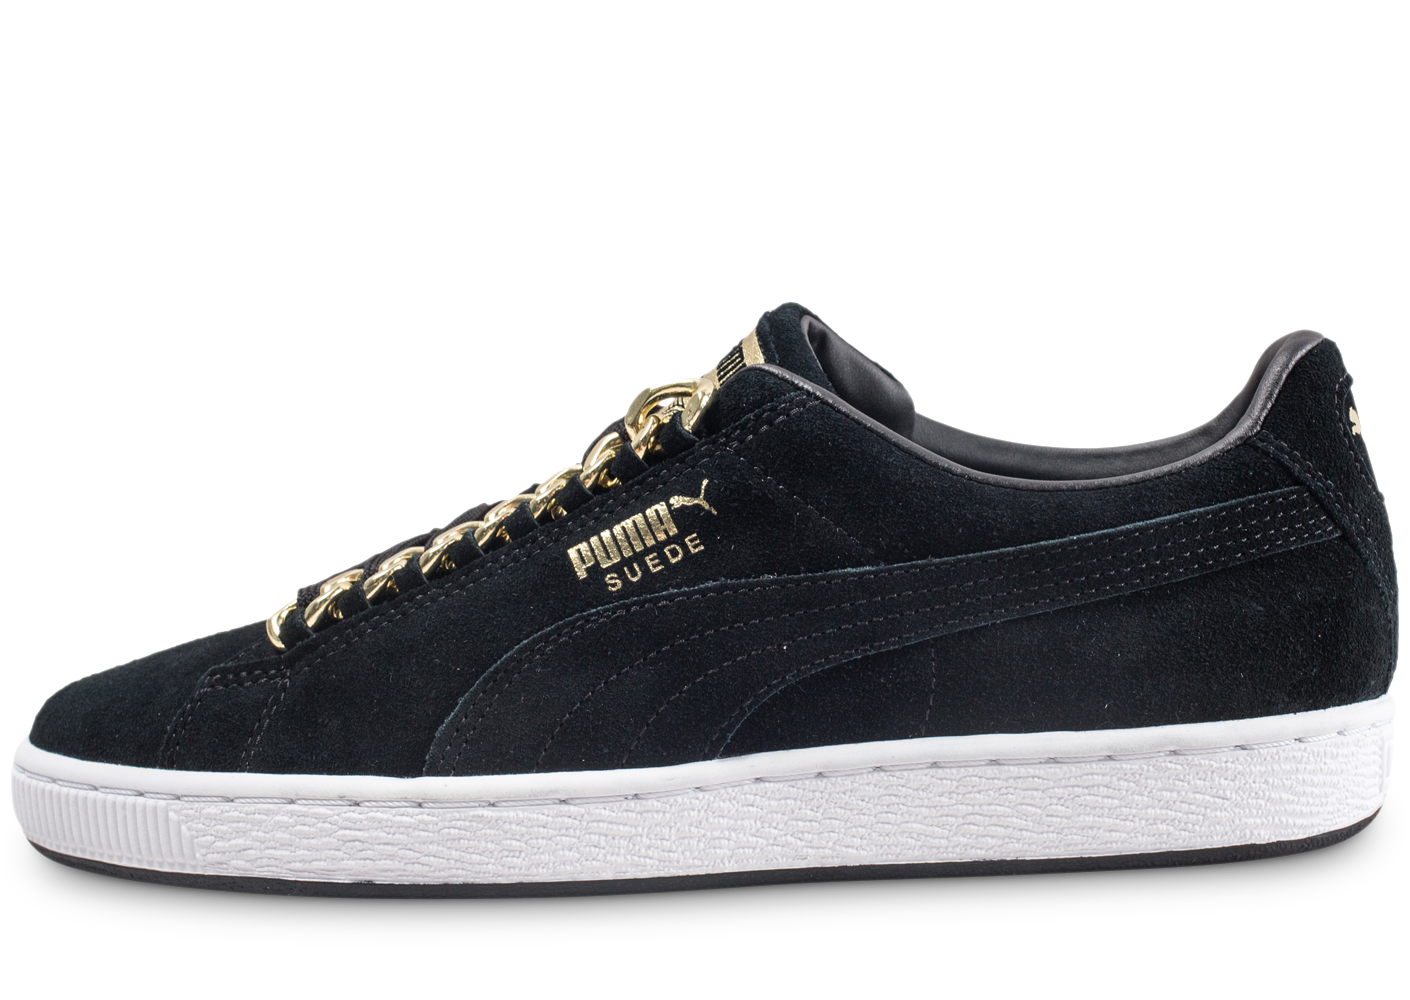 Puma homme suede classic x chains gold baskets